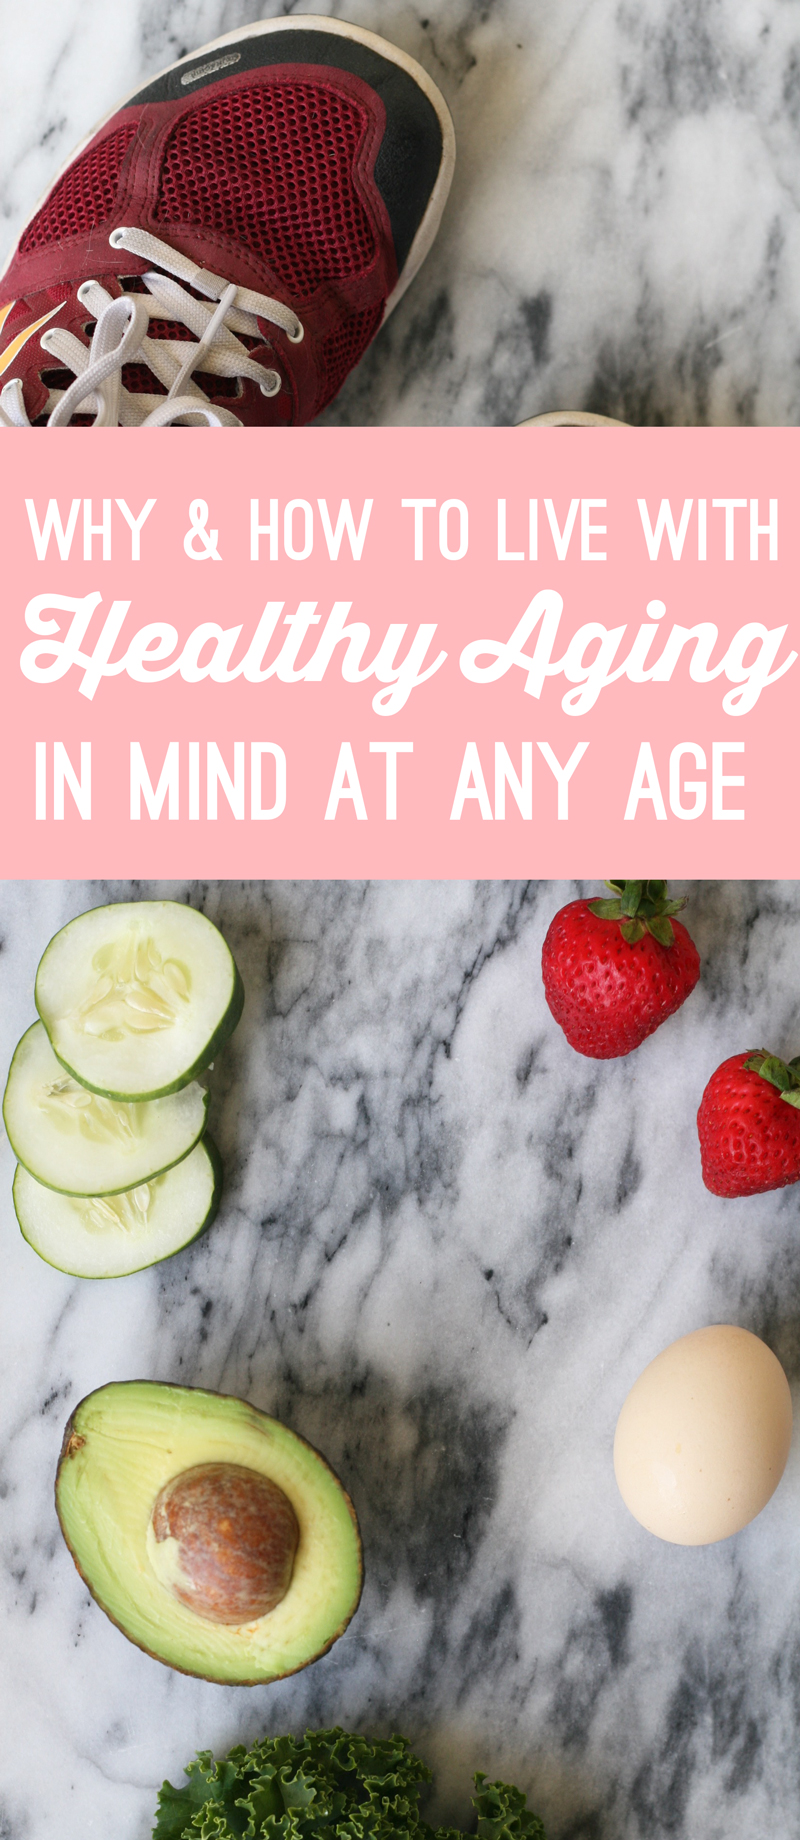 Why & How to Live With Healthy Aging in Mind at Any Age